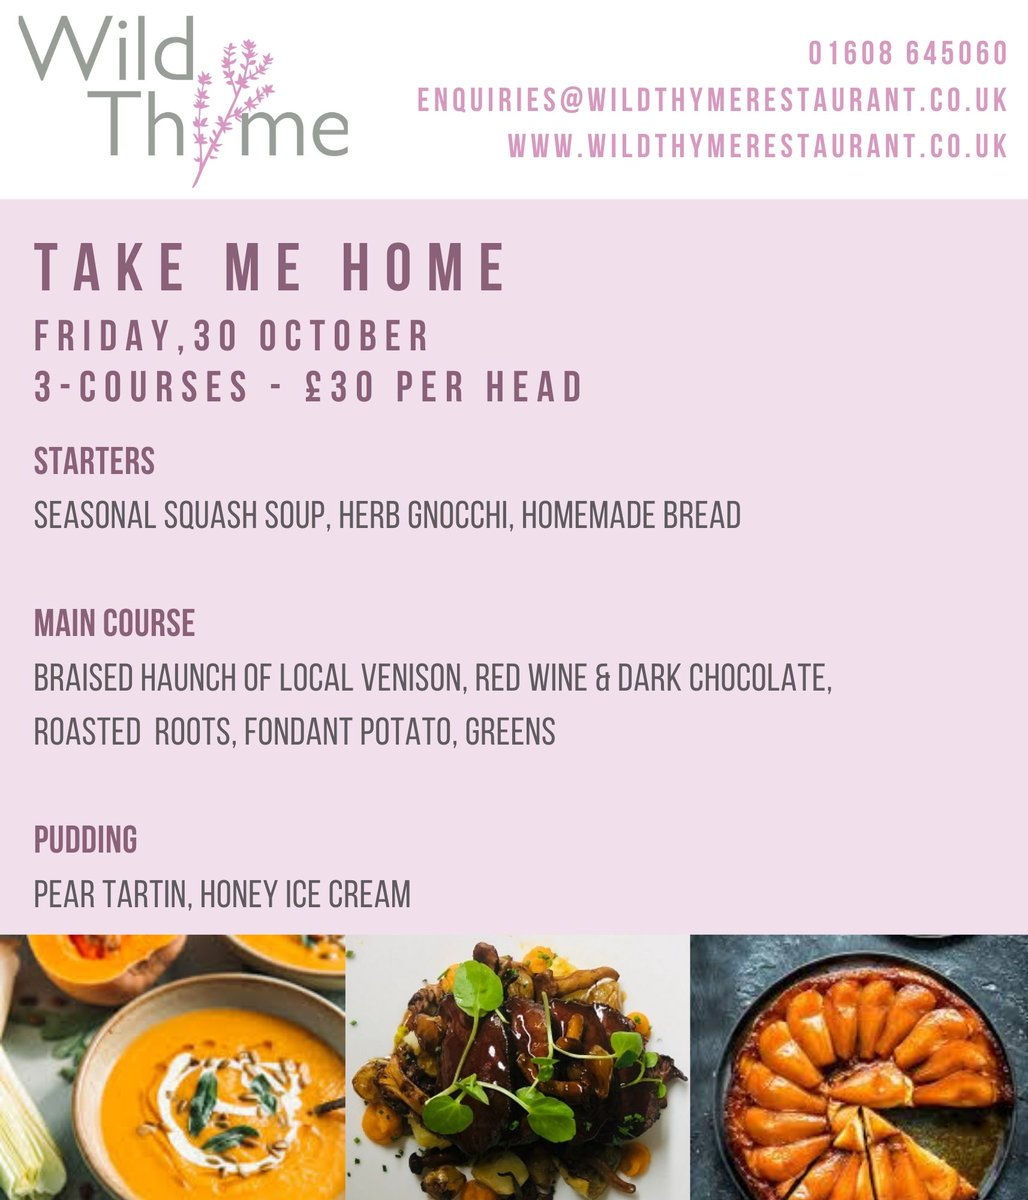 #two chances to eat @wtrestaurant food this #weekend #friday, 30 #octobe #eatin #eatout #diningclub #takemehome #seasonal ingredients #done the @wtrestaurant way email enquiries@wildthymerestaurant.co.uk to book #fridaynightdinner #takeaway #supperclub #chippingnorton #lovefood https://t.co/Xtmw5zKPuN